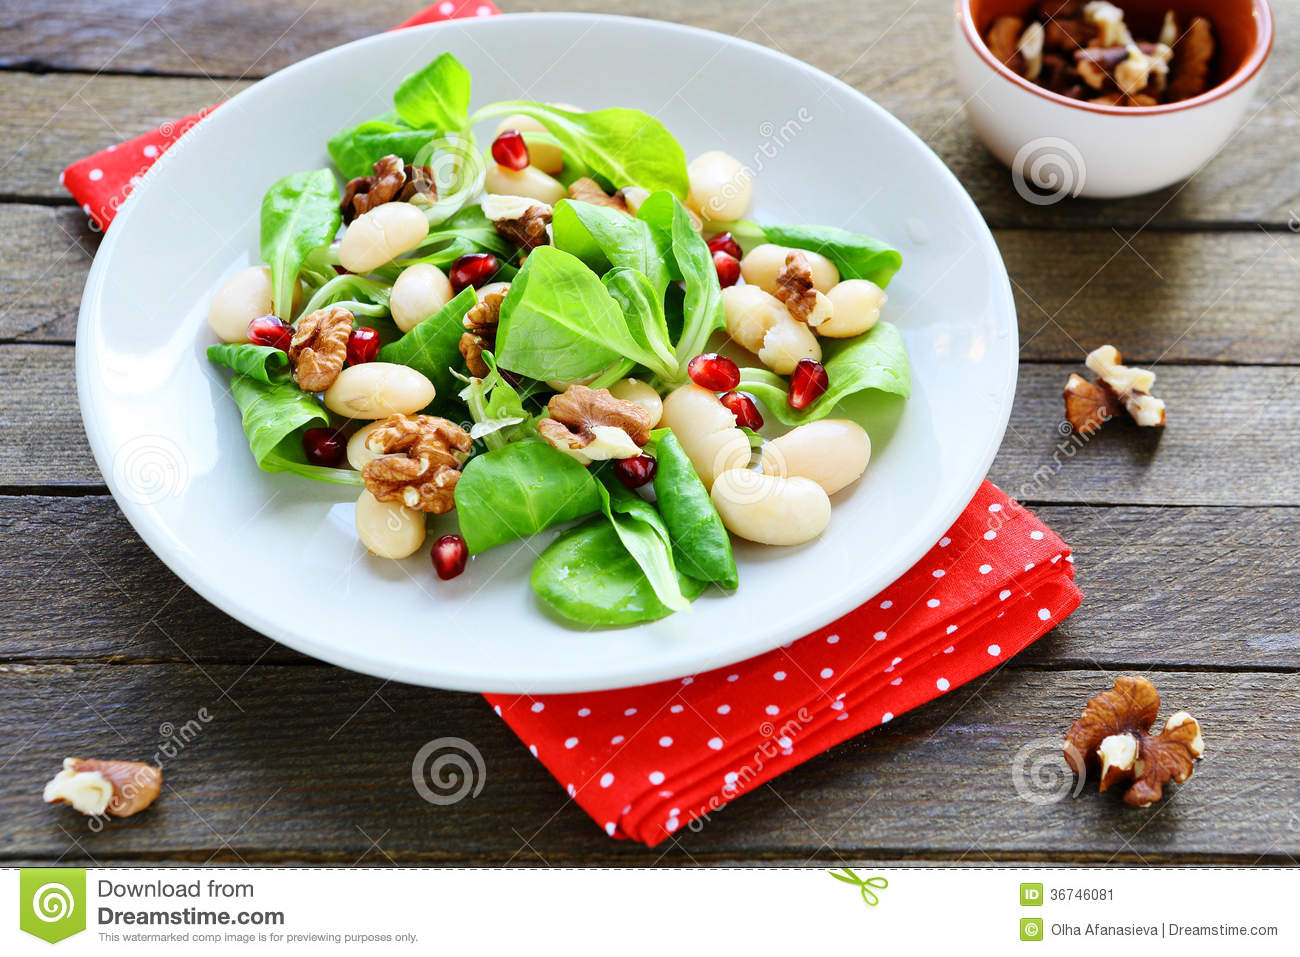 Fresh salad with beans and nuts